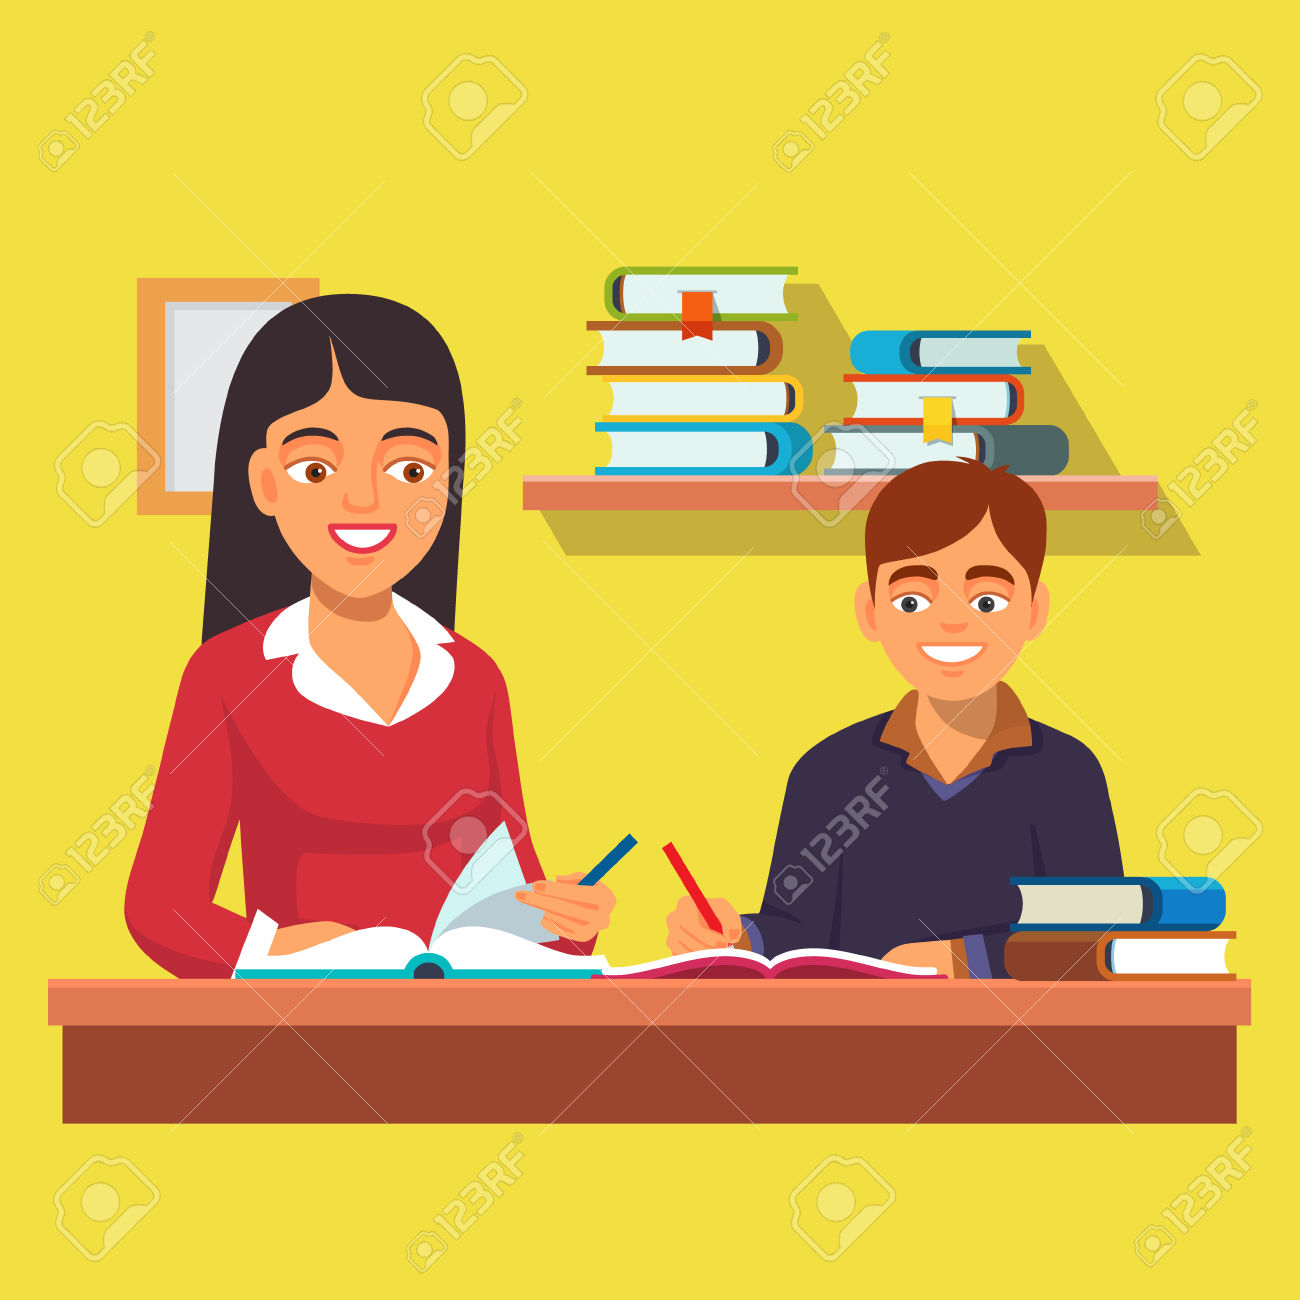 Boy turning in assignment to teacher clipart clip art freeuse library Boy turning in assignment to teacher clipart - ClipartNinja clip art freeuse library